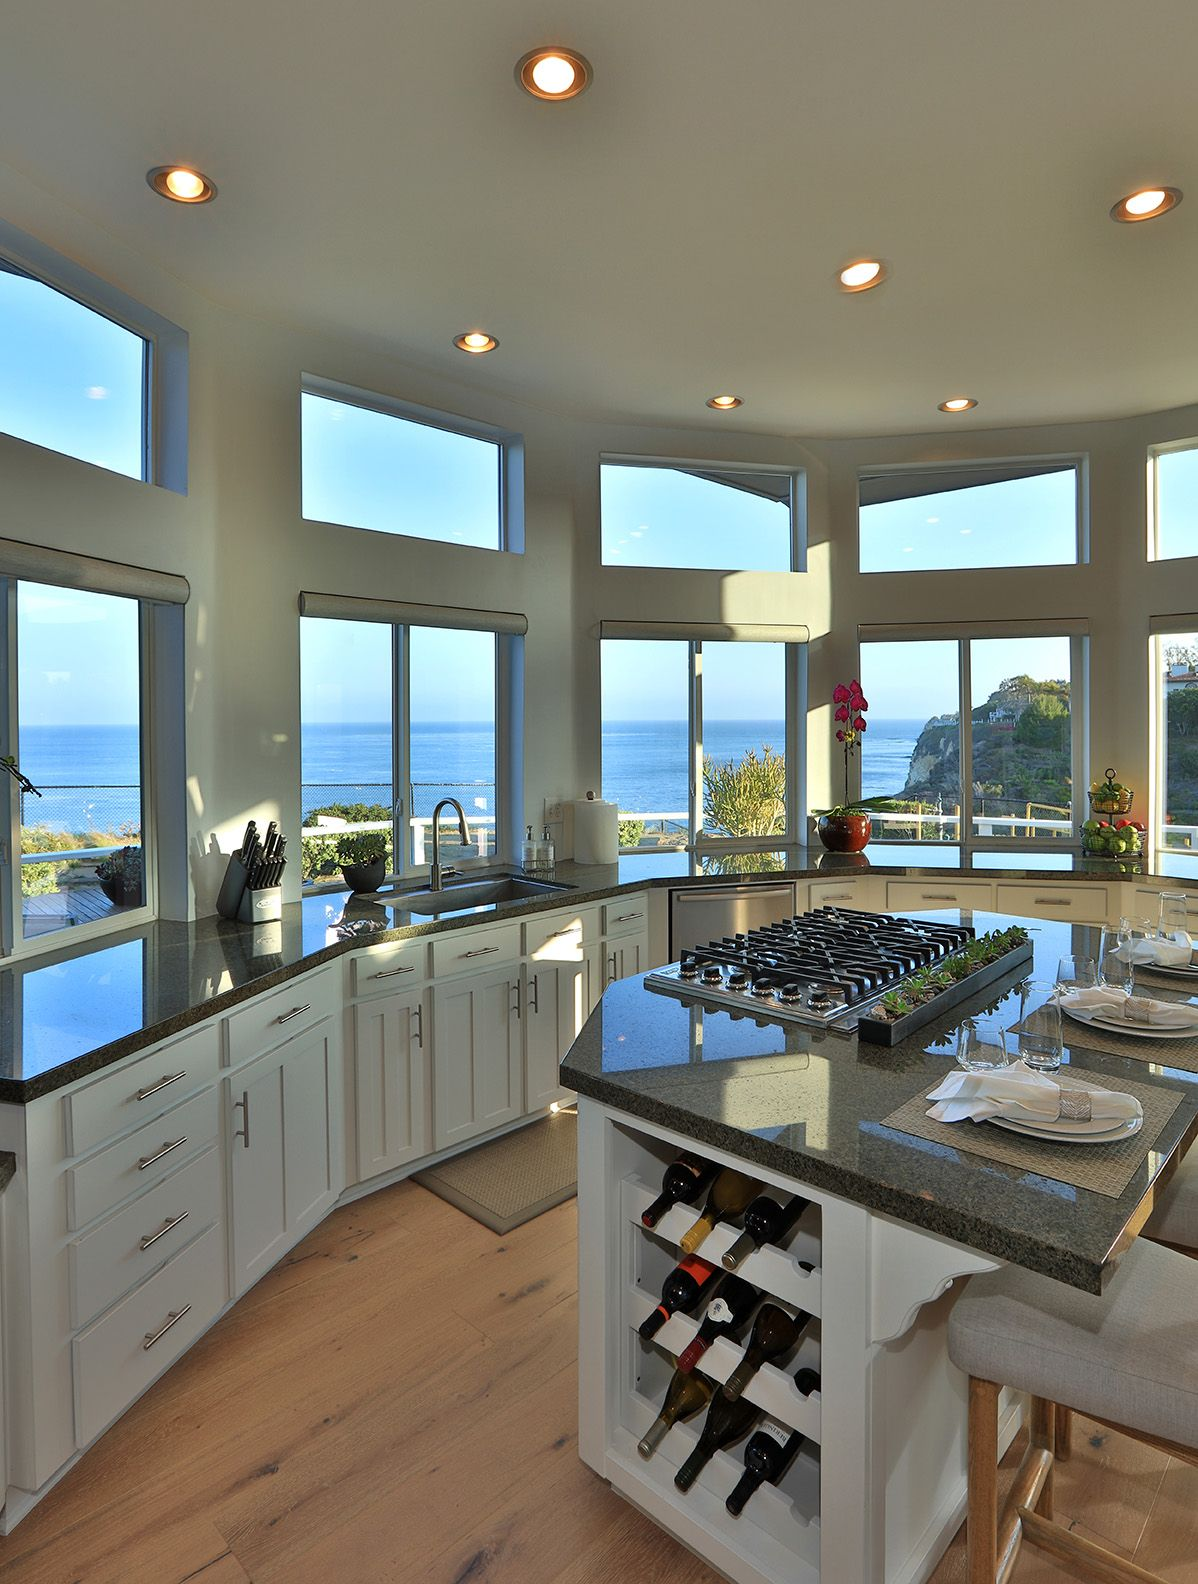 Luxury Modern Southern California Kitchen With Ocean View Home